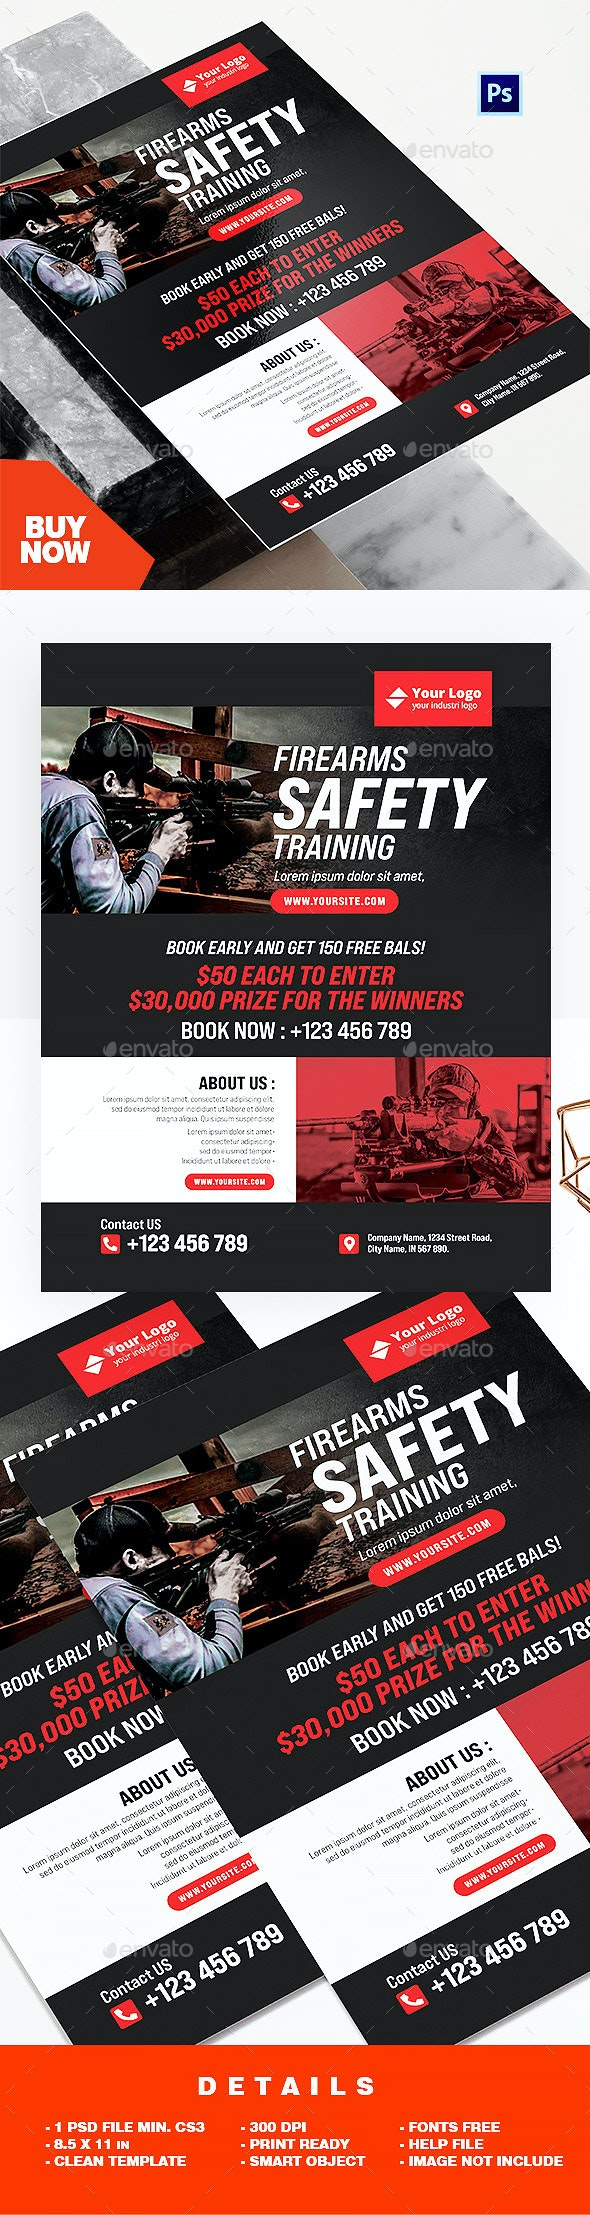 Firearms Safety Training Course Flyer Template - Sports Events